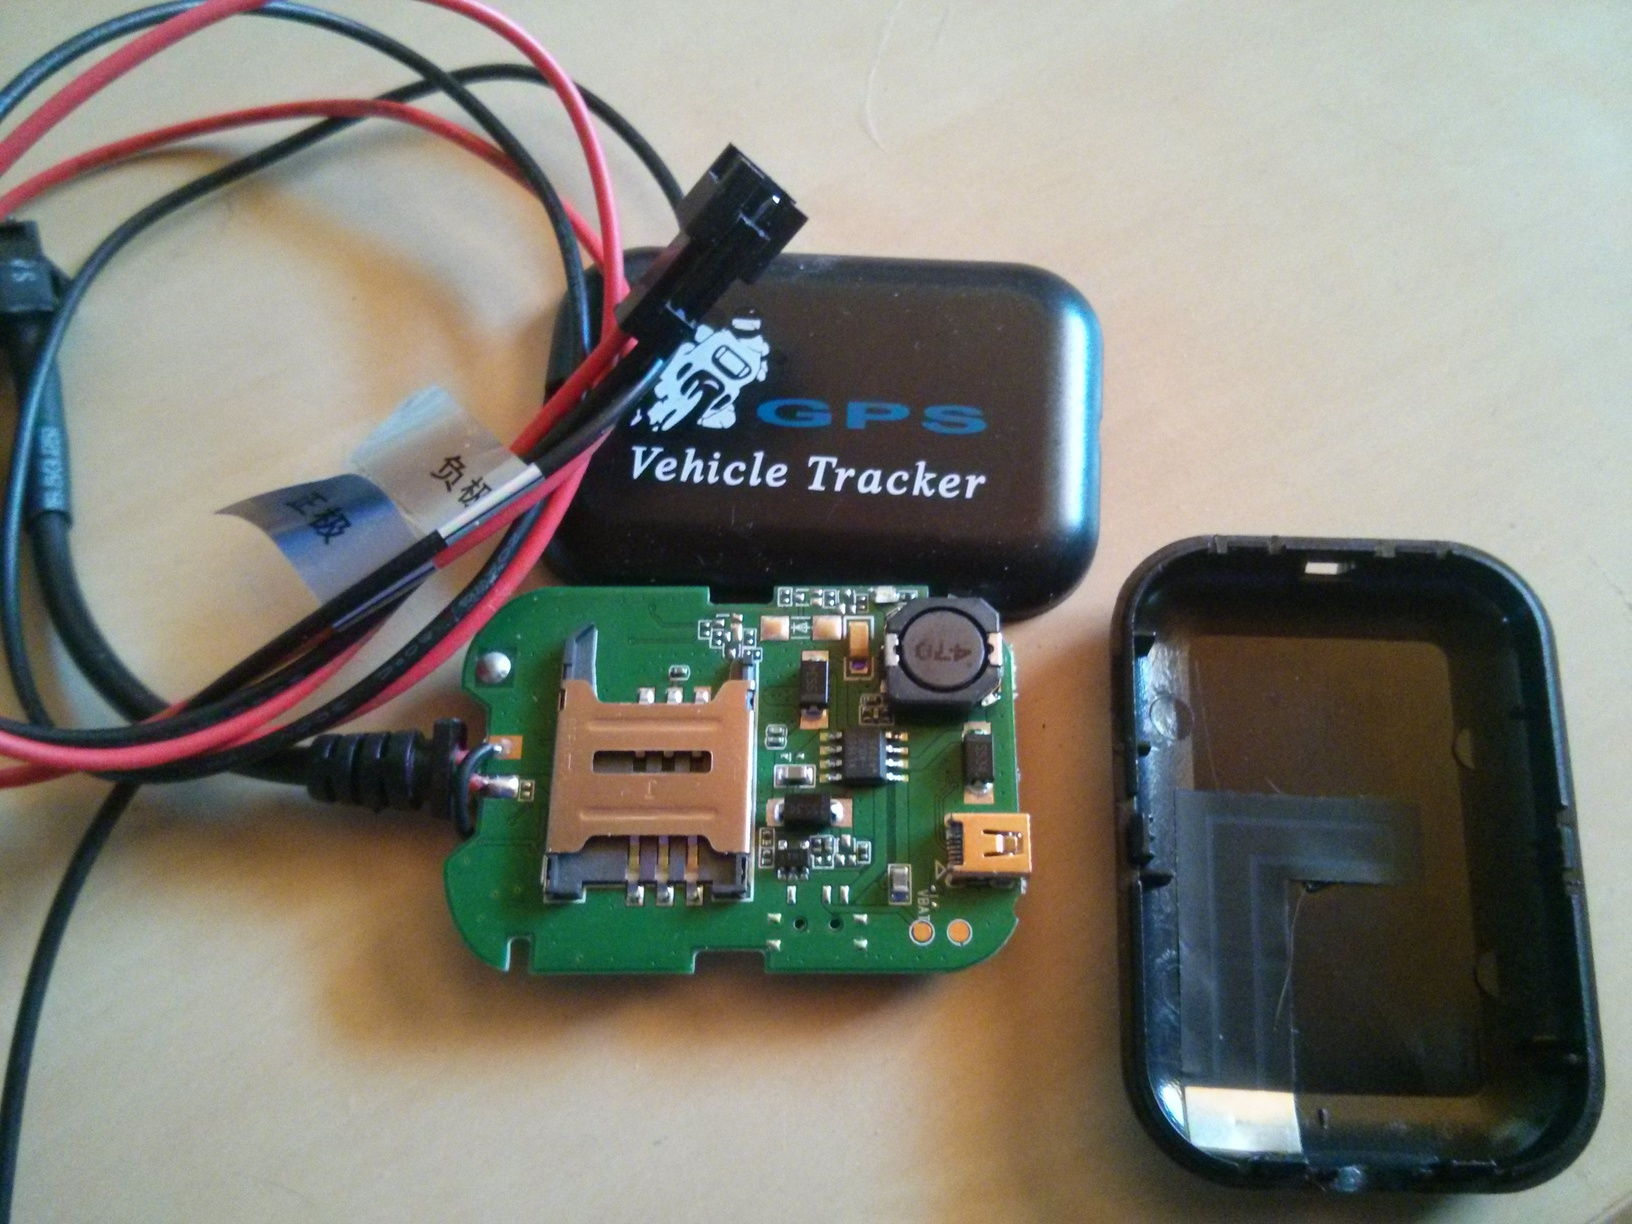 GPS Vehicle Tracker for €13 – marcusjenkins